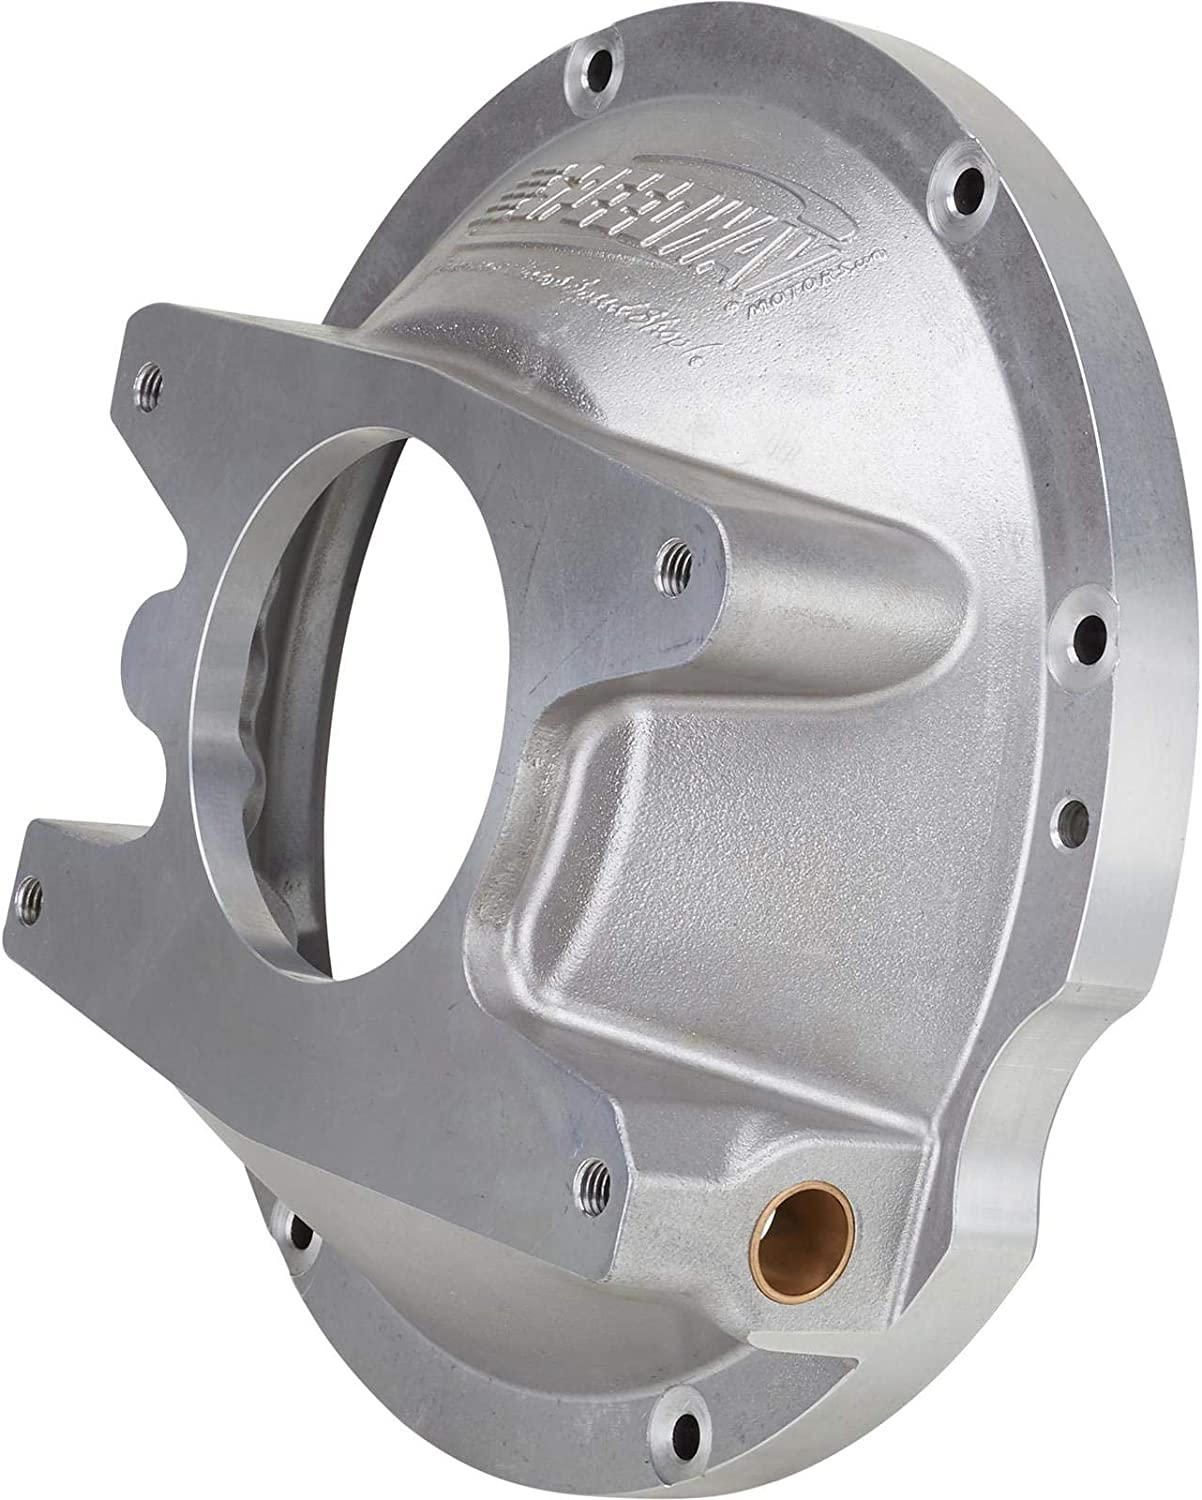 Replacement Parts GM Clutch GM Manual Trans to Flathead V8 Adapter ...